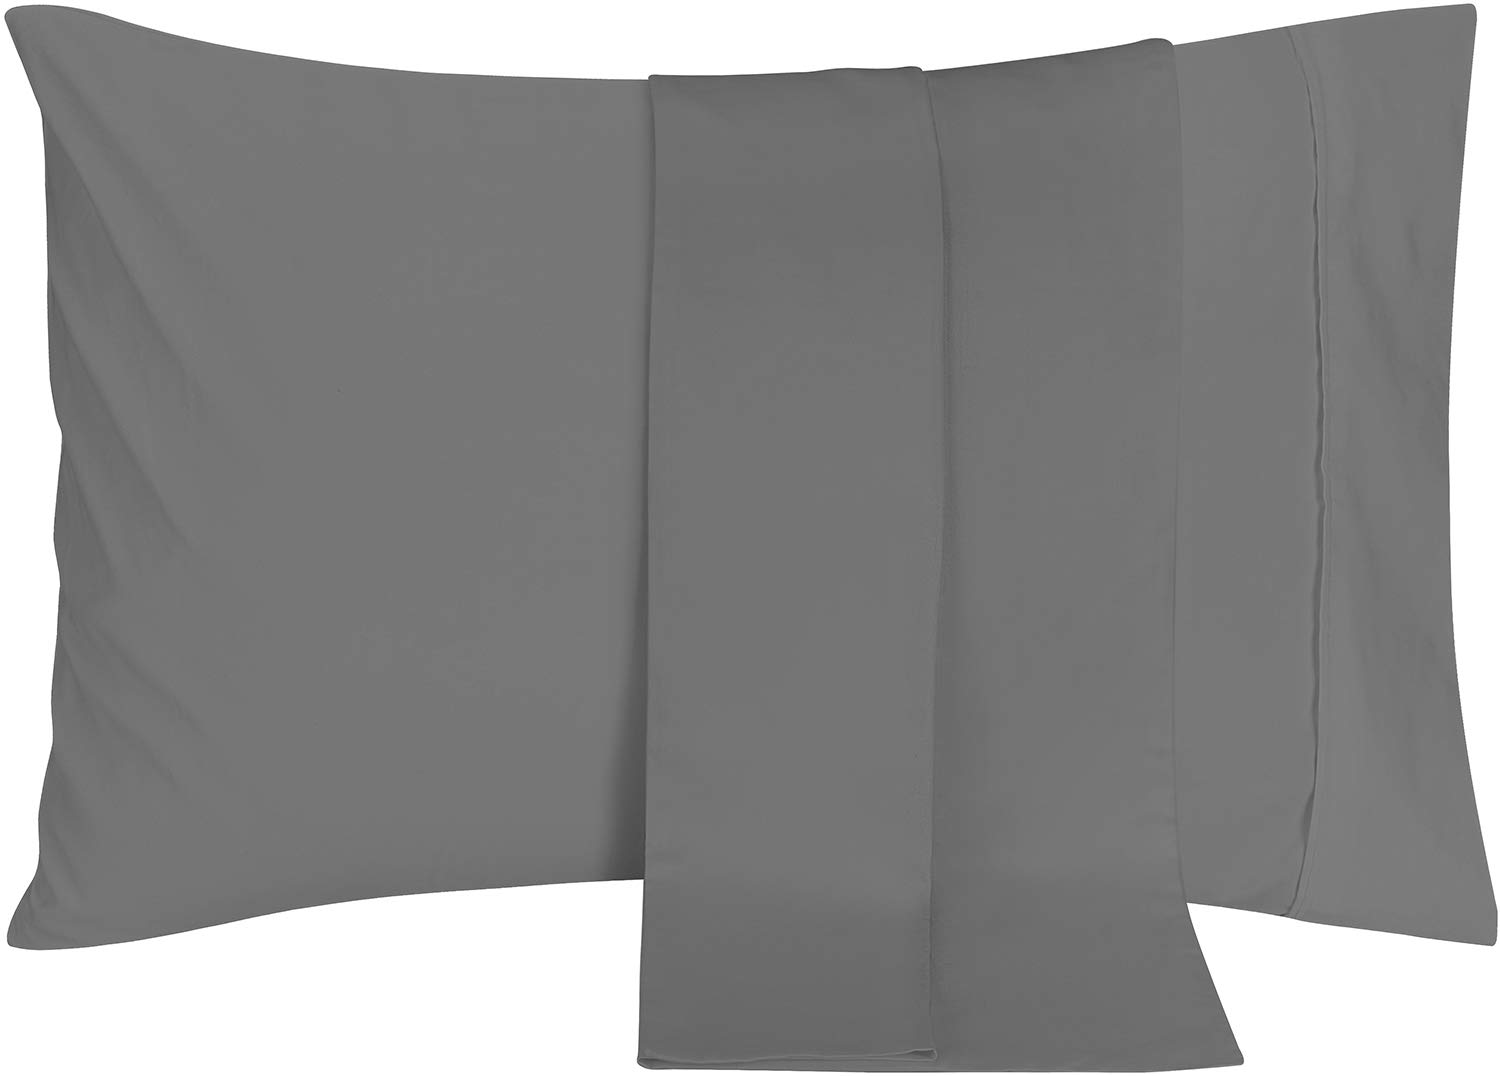 Utopia Bedding Pillowcases 2 Pack – (Queen, Grey) - Brushed Microfiber Pillow Covers